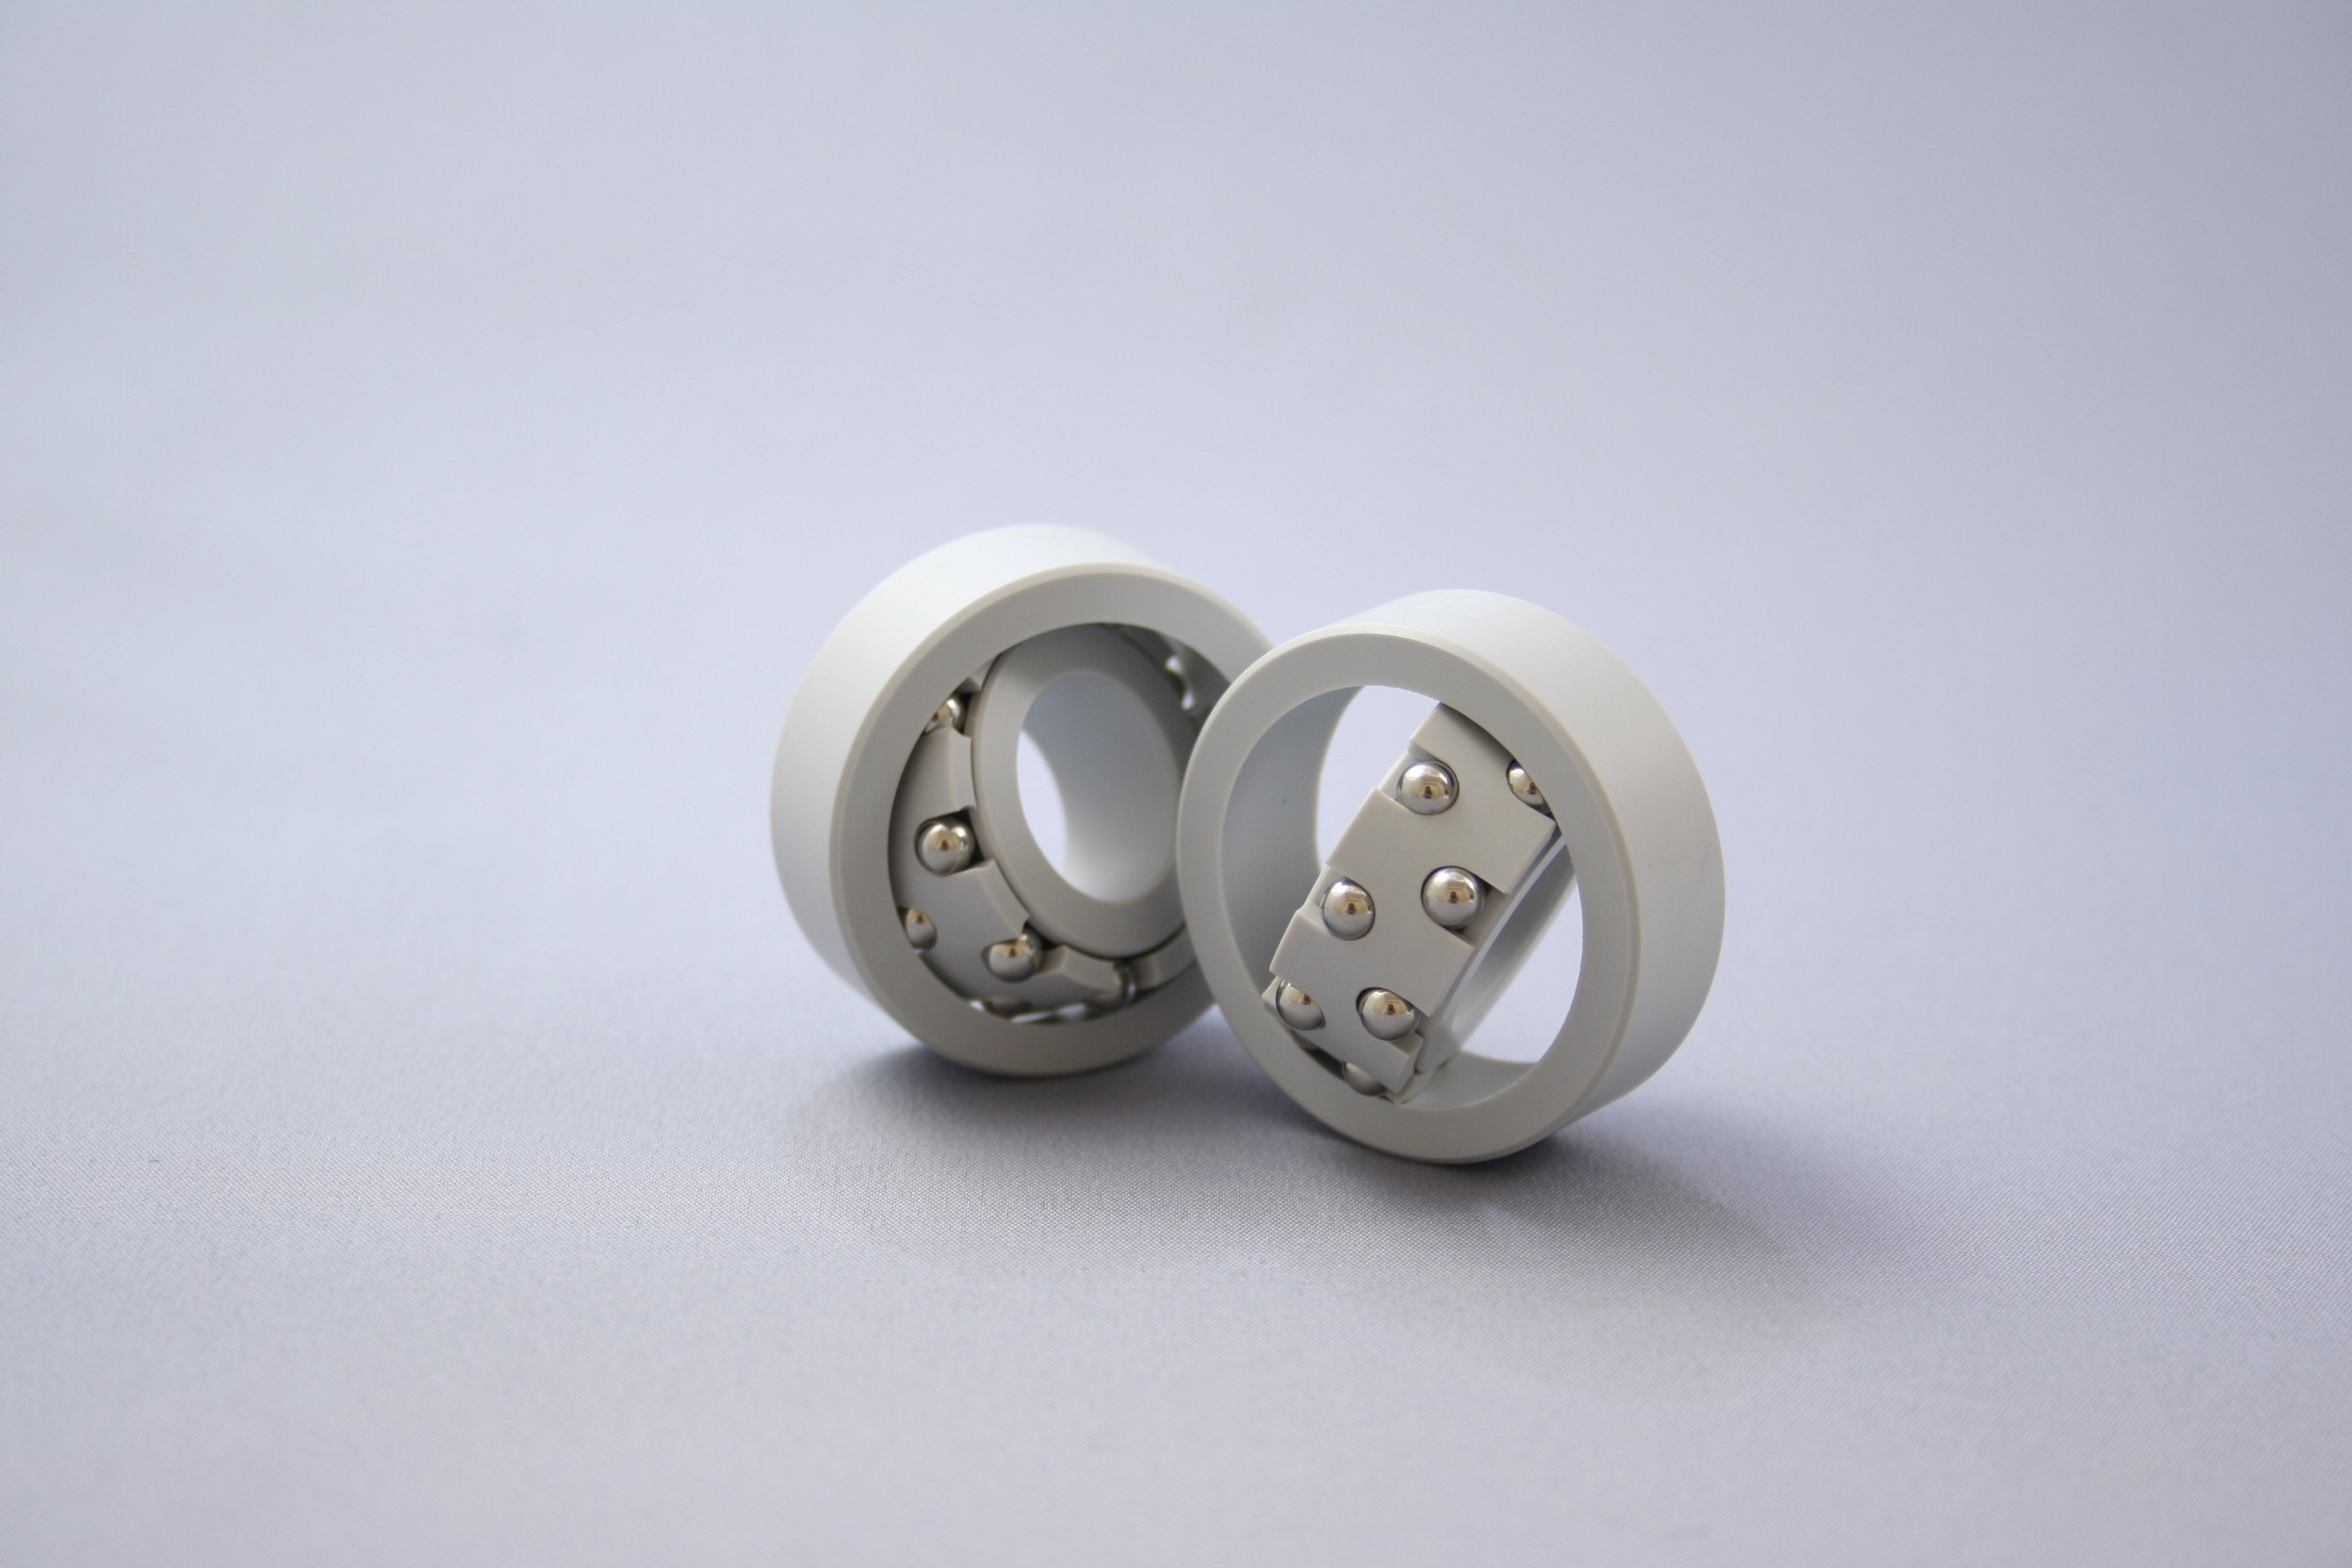 Plastic bearings for a variety of applications.